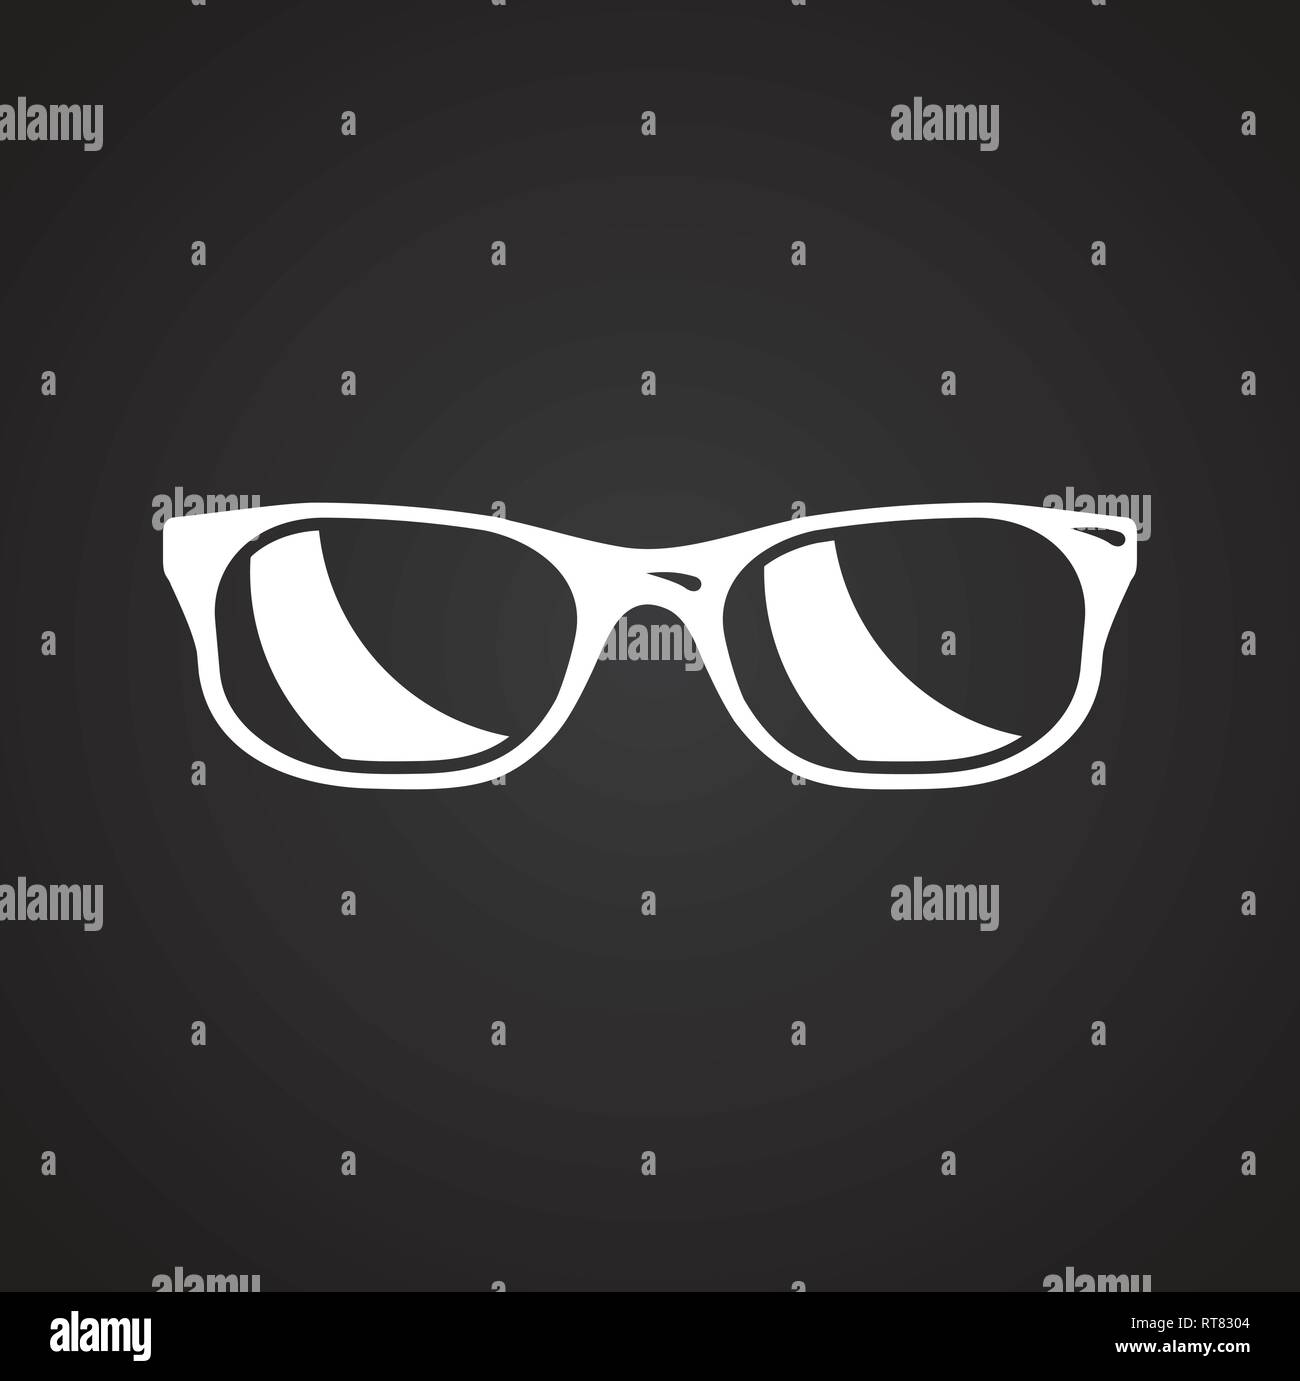 Glasses icon on black background for graphic and web design, Modern simple vector sign. Internet concept. Trendy symbol for website design web button or mobile app. - Stock Vector